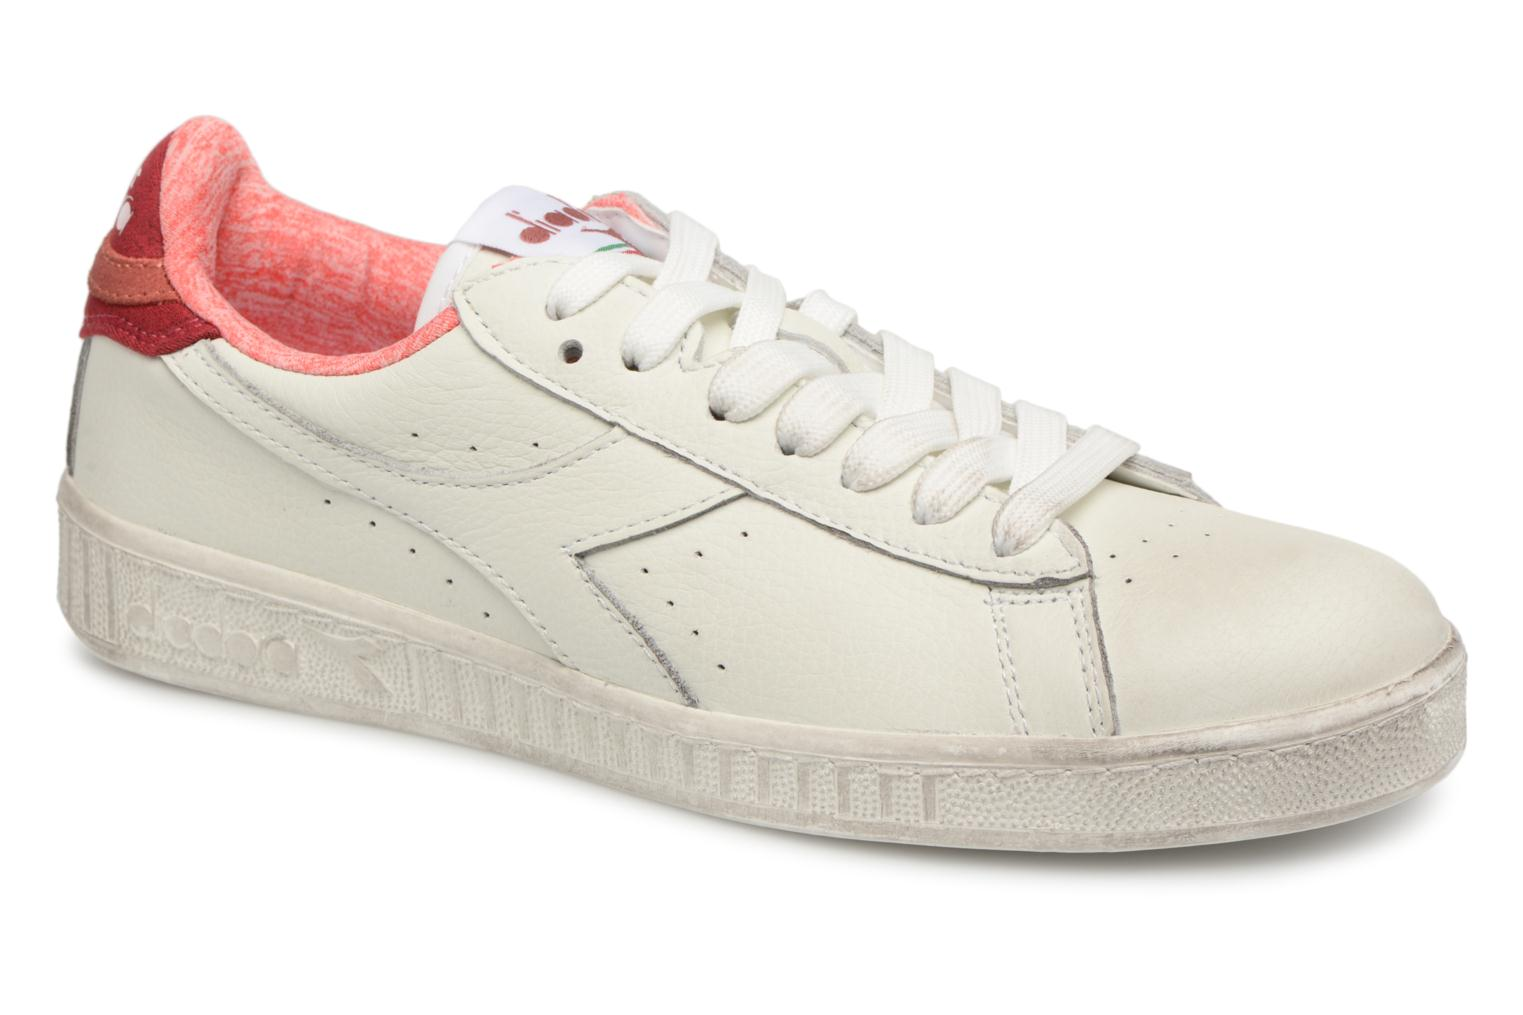 Marques Chaussure homme Diadora homme GAME L LOW JERSEY ROSA SBIADITA